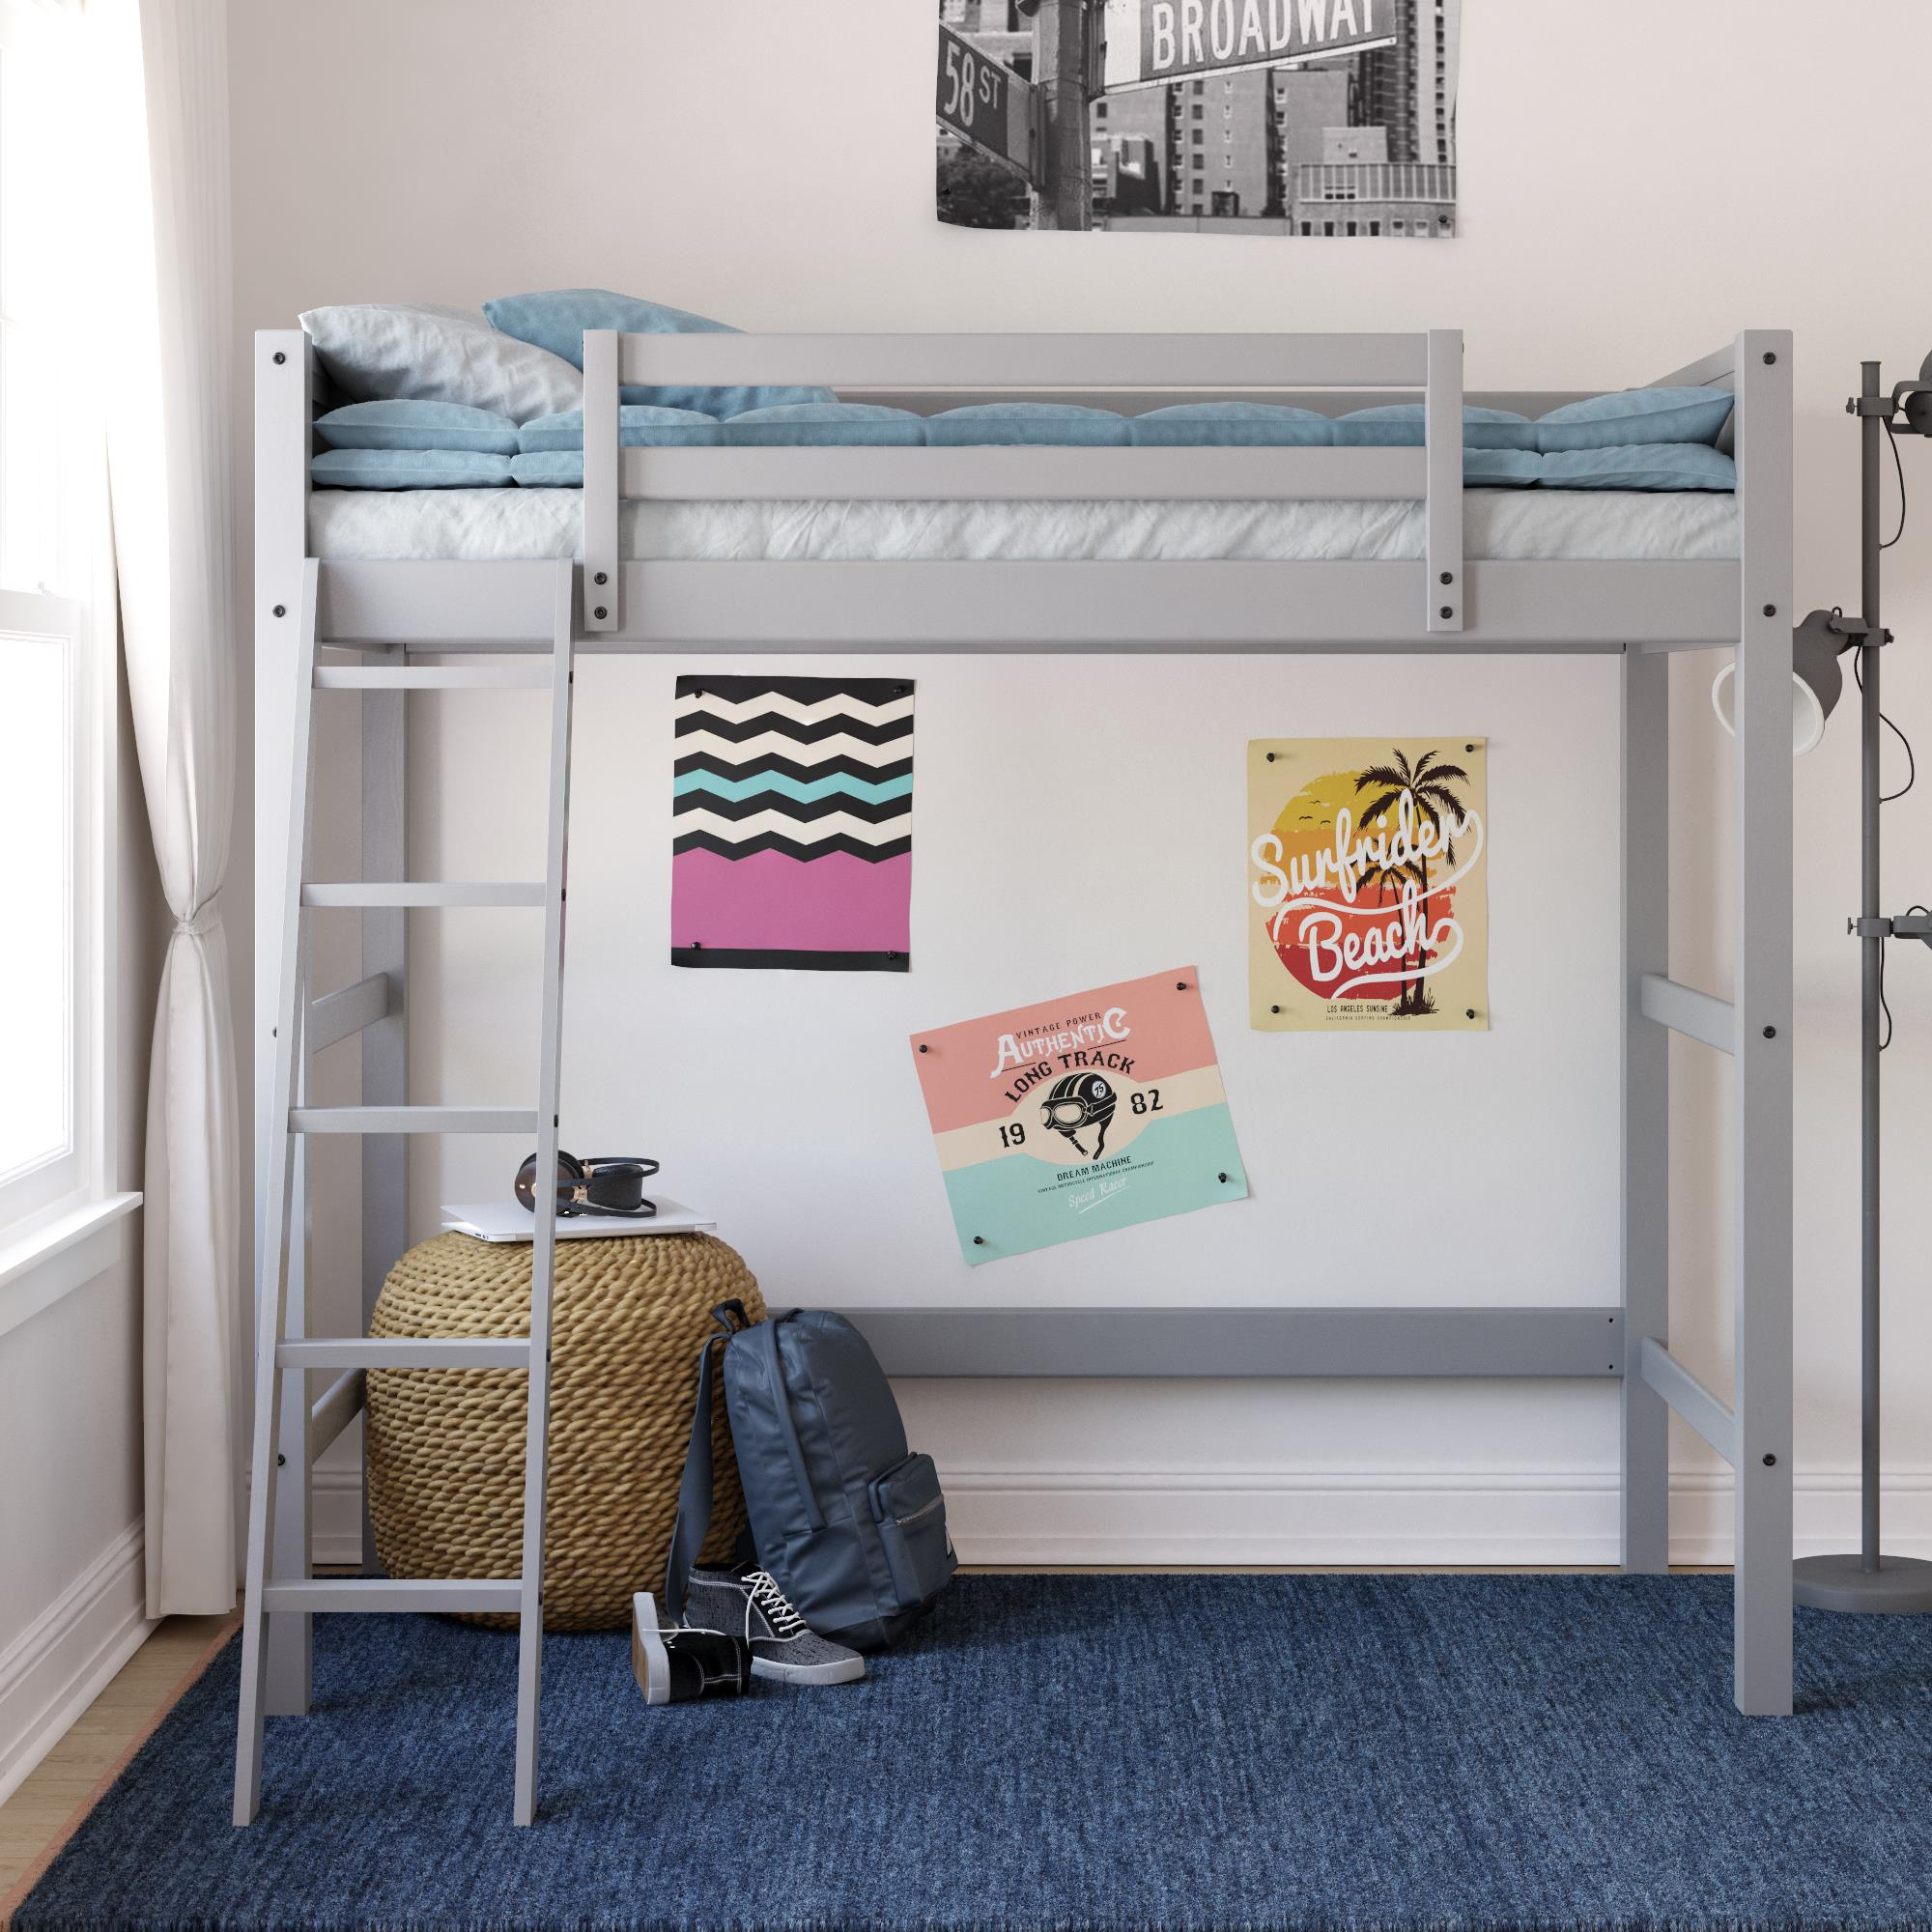 Walmart: Your Zone Kids Wooden Loft Bed with Ladder Twin Size for $99.97 (Reg. Price $299.99)